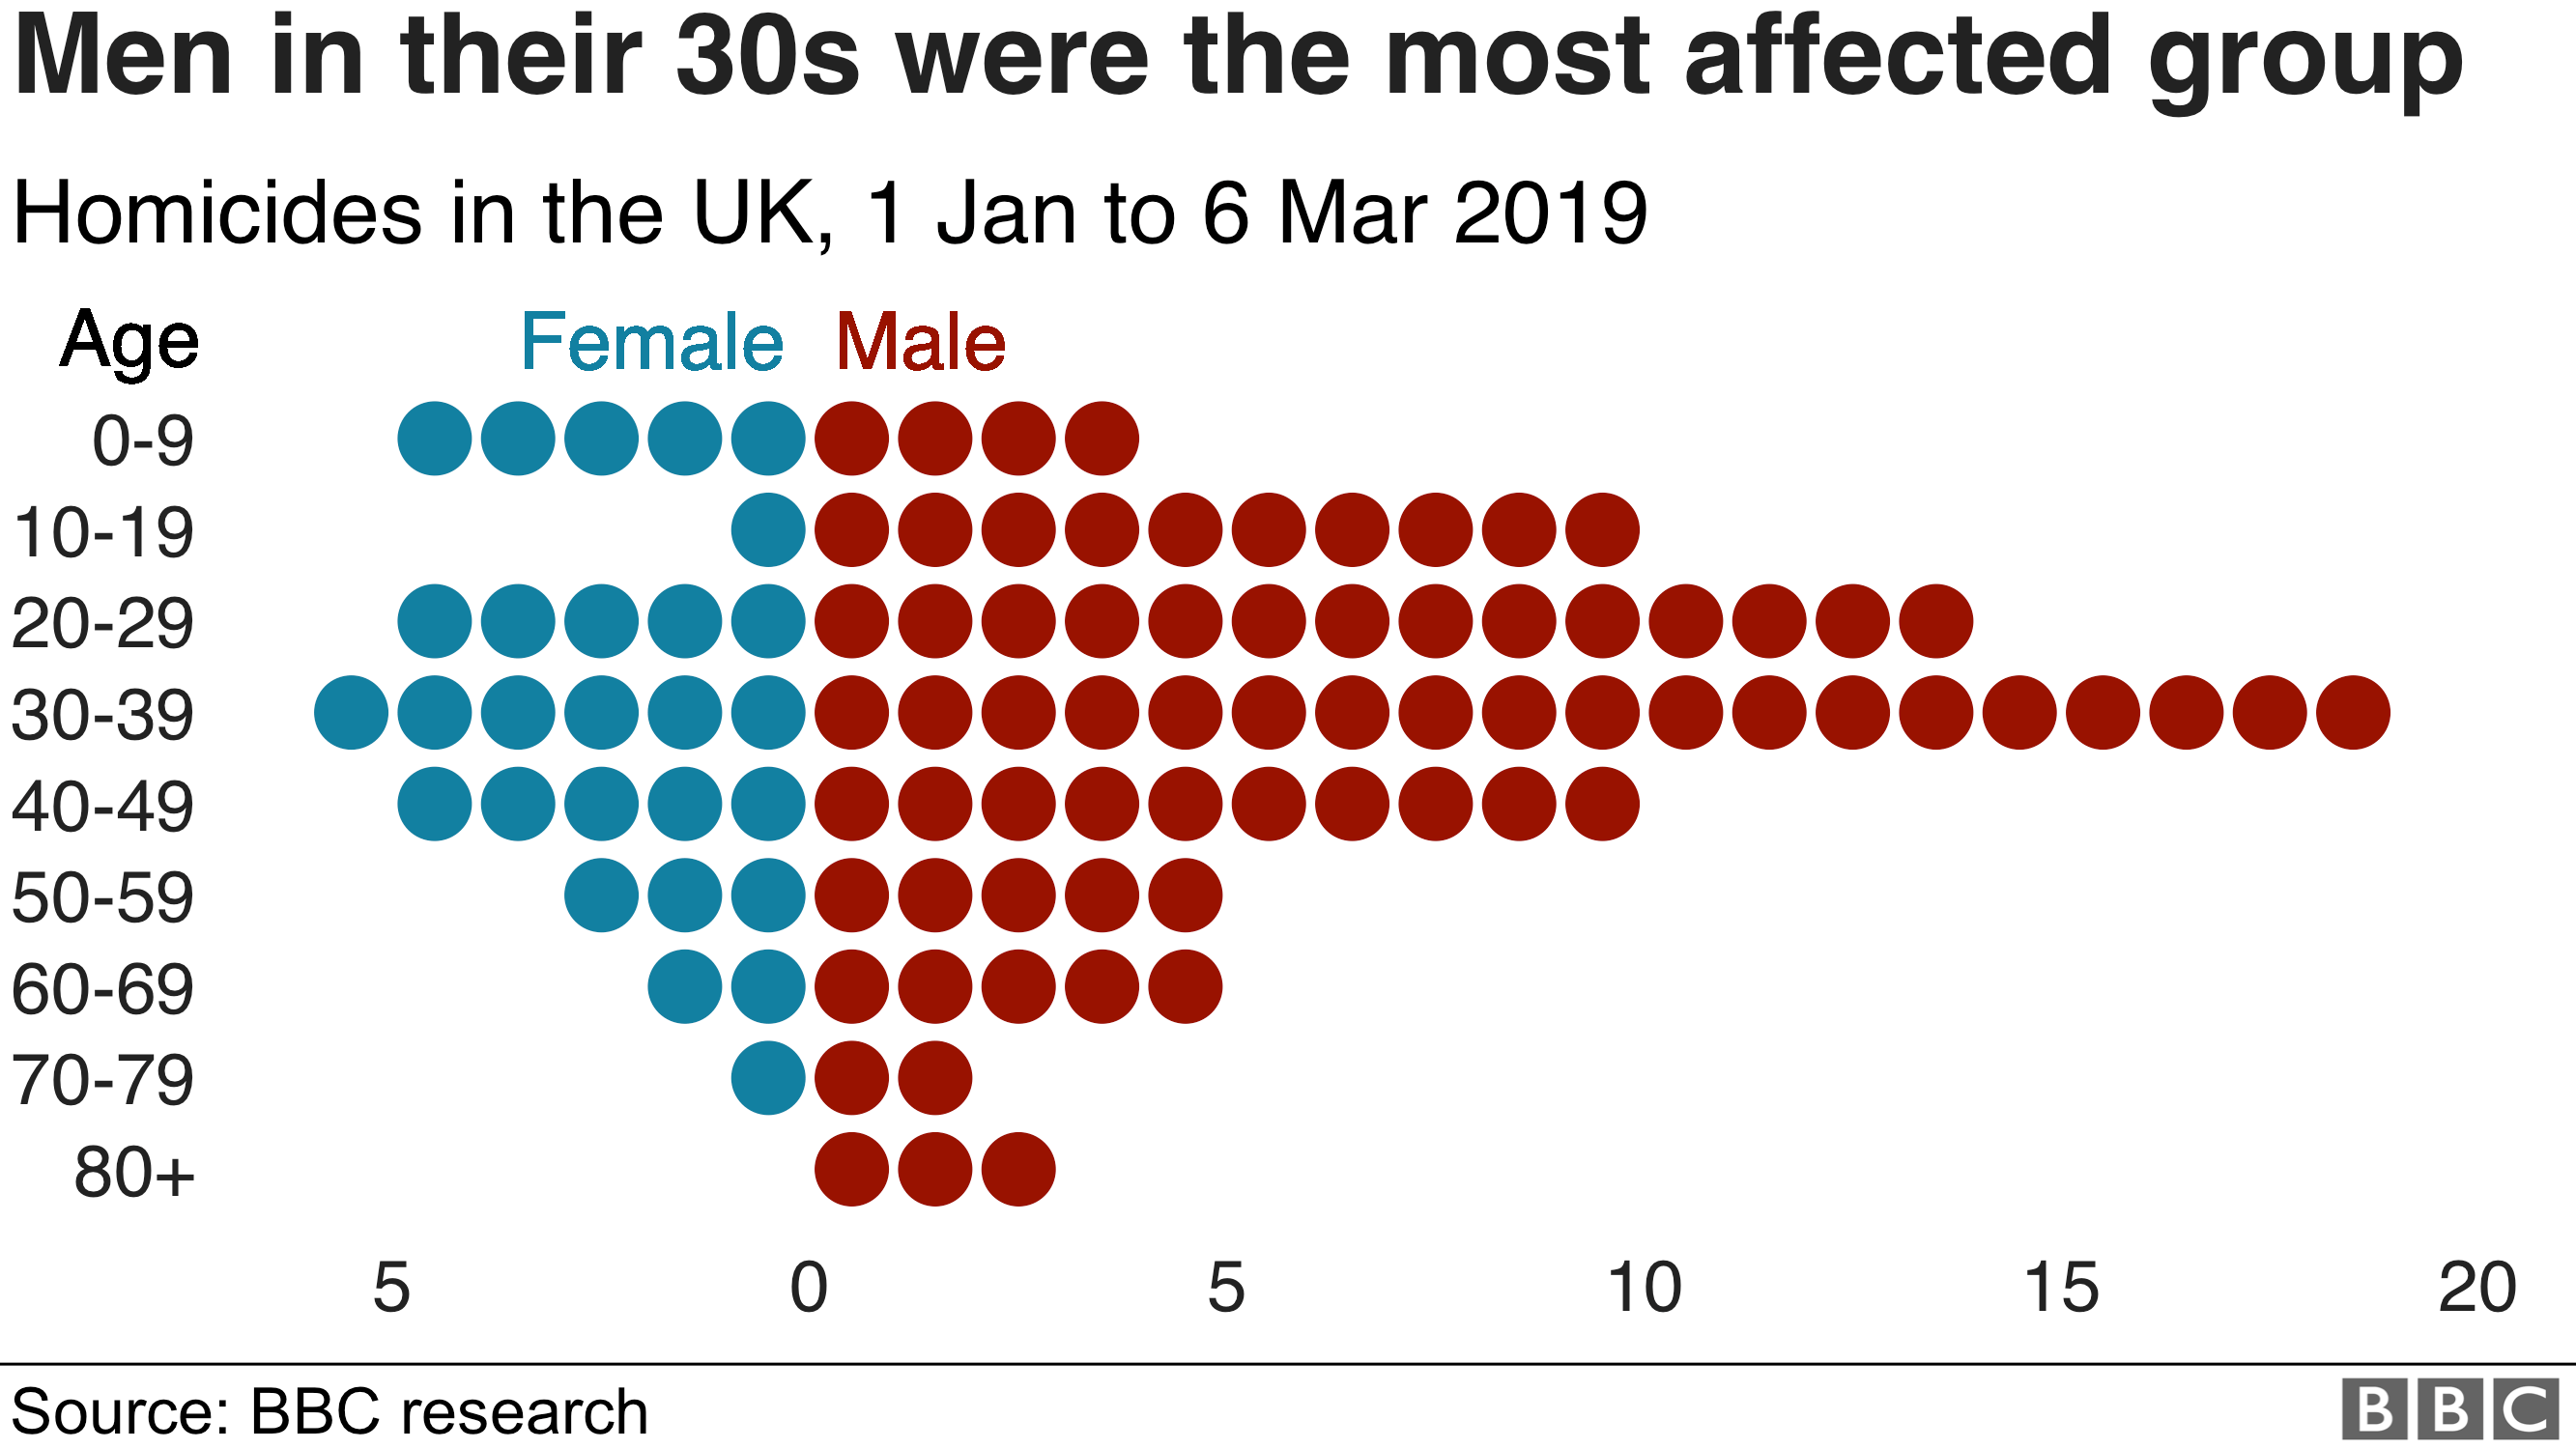 Men in their 30s were the most affected group